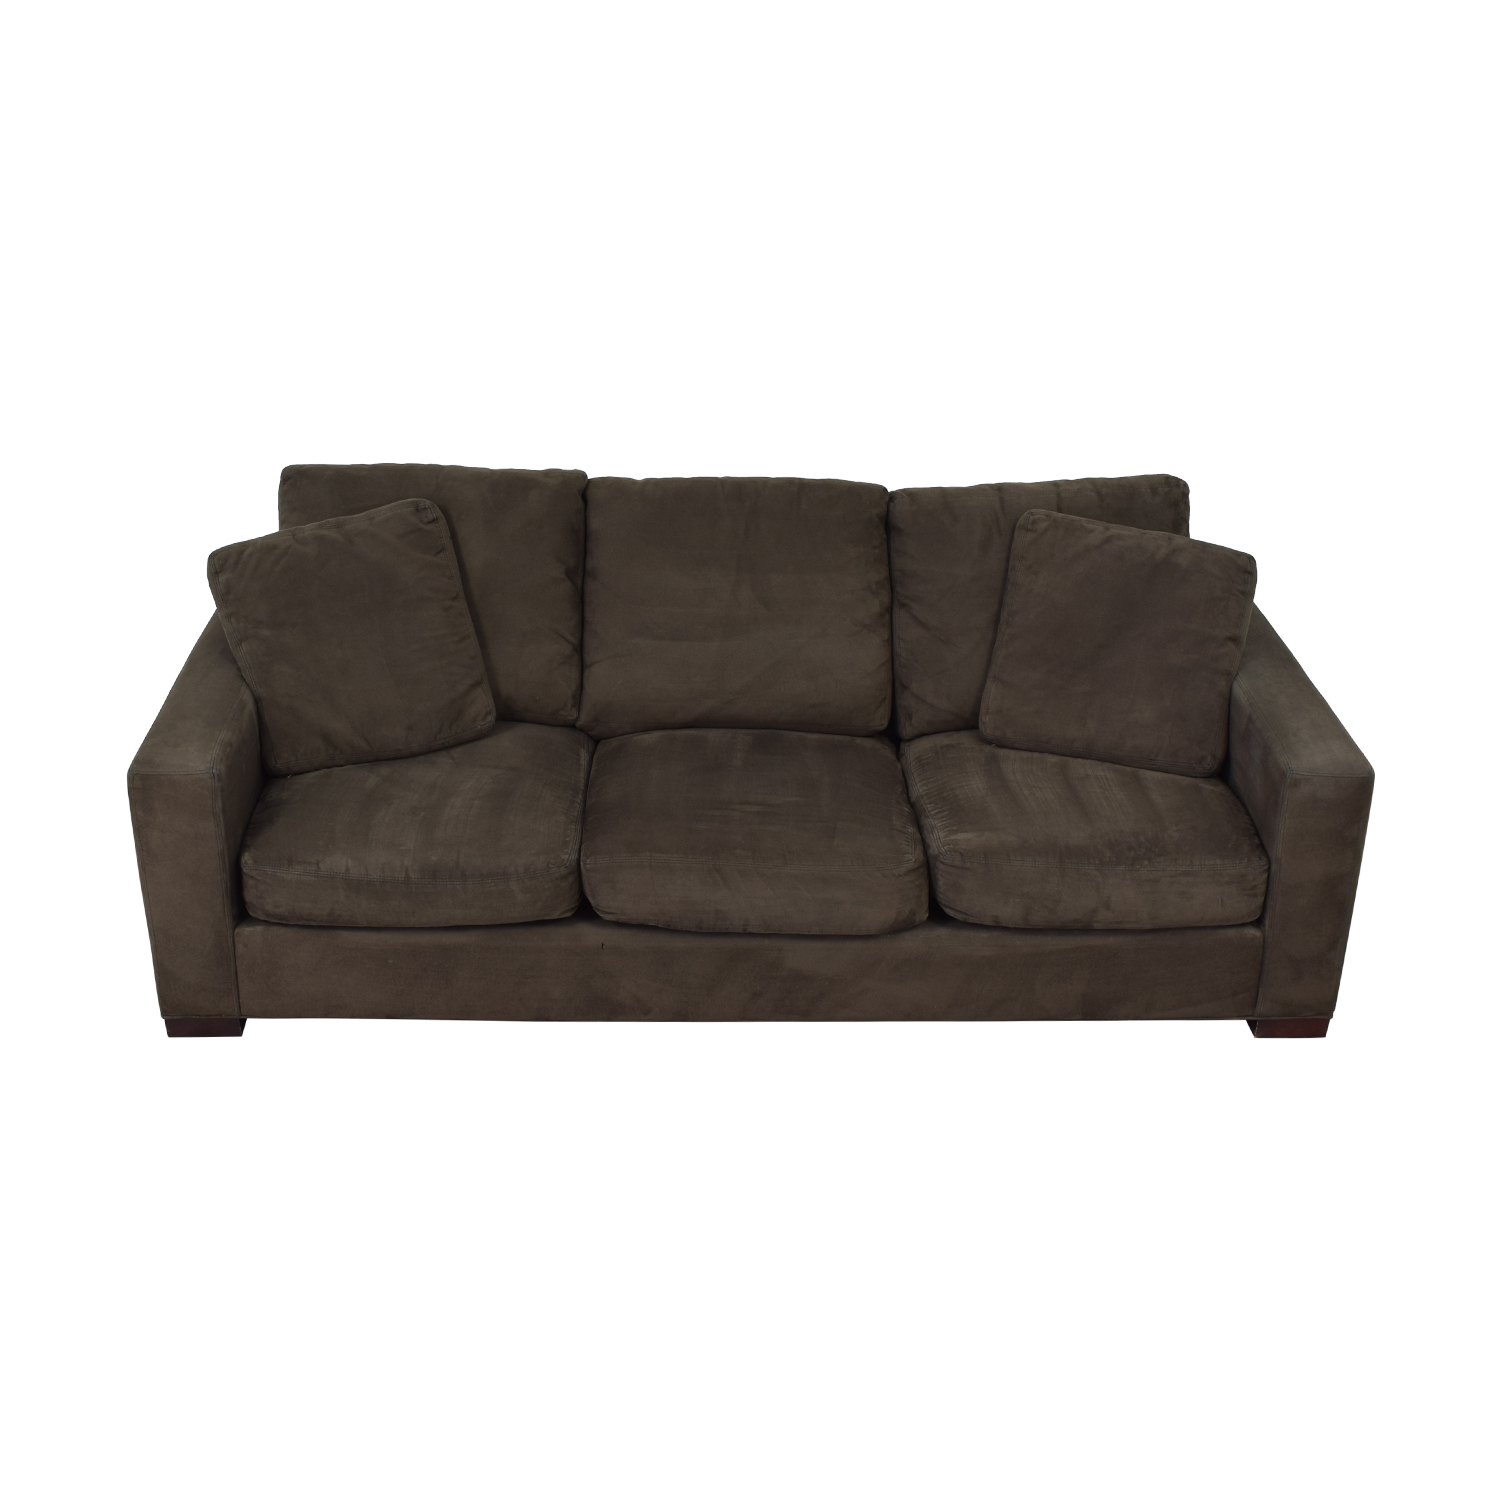 Room & Board Dark Grey Micro Suede Sofa / Sofas